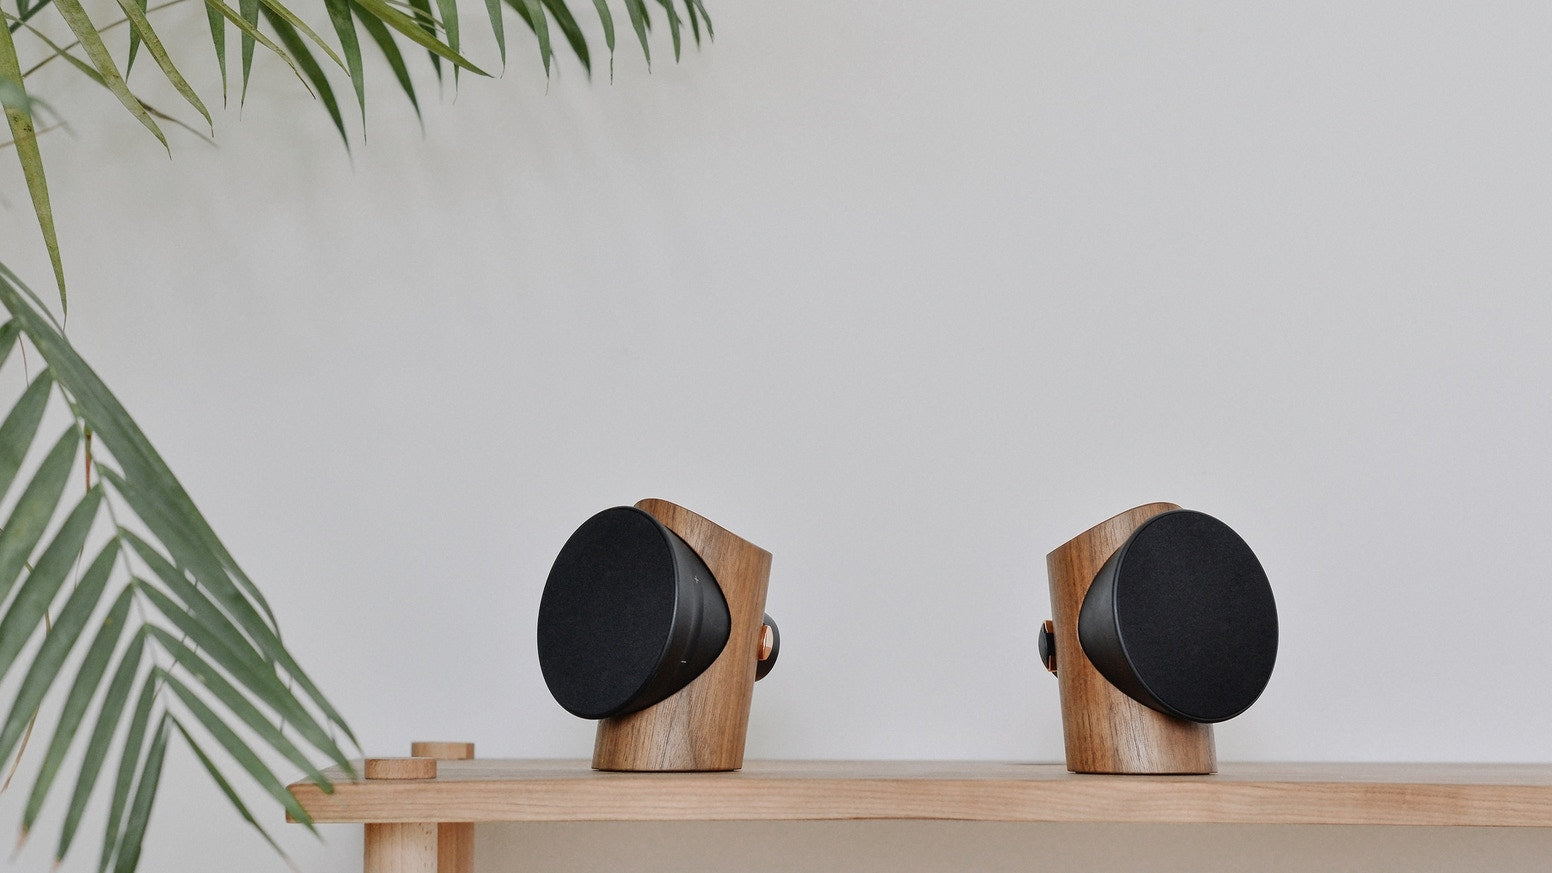 ZOWOO Sun Mao Bluetooth speaker with traditional Chinese mortise-and-tenon joint